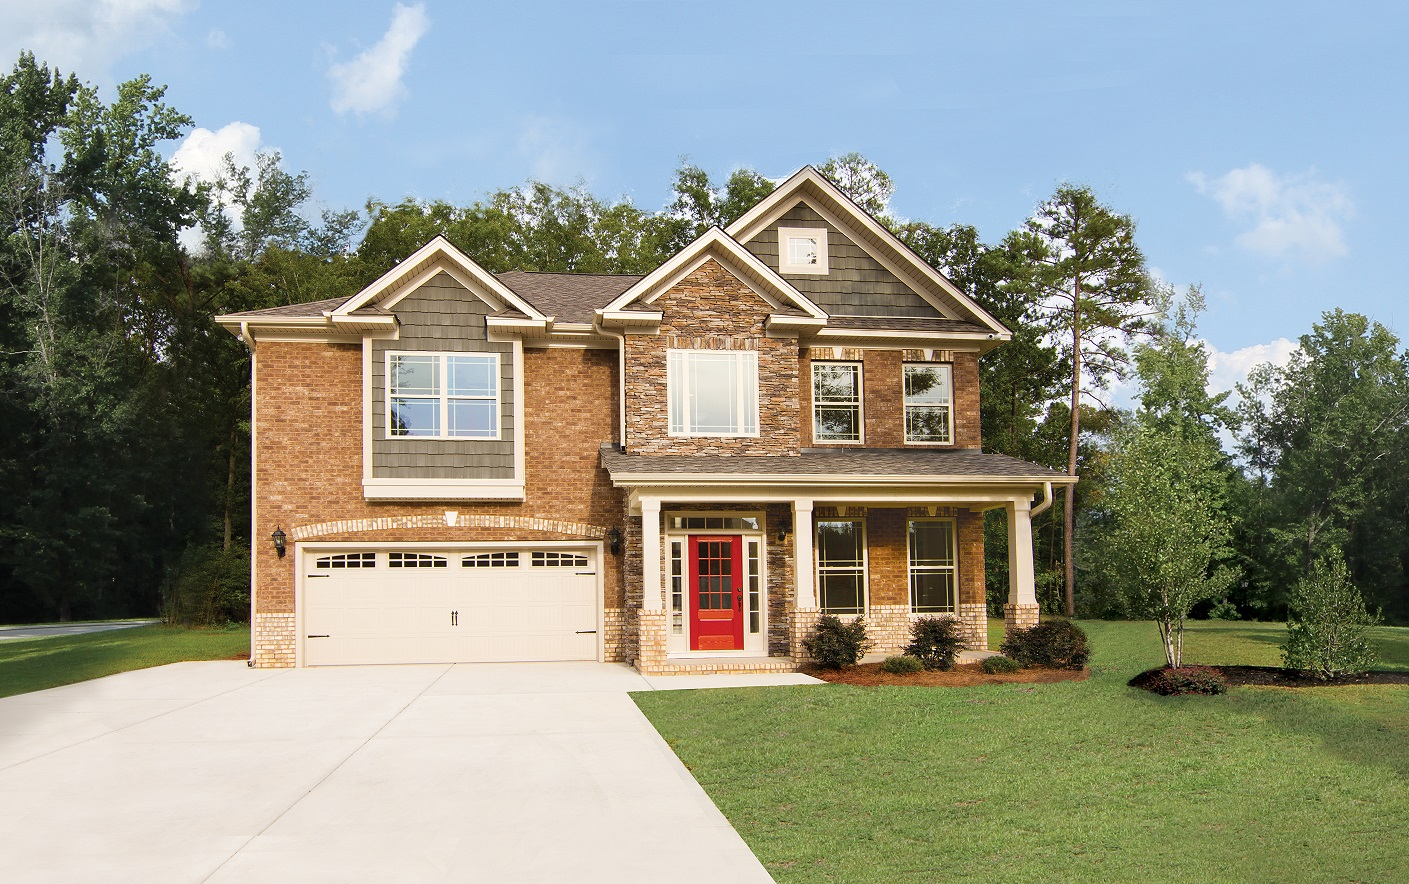 Eastwood Homes Announces Acquisition Of Fortress Builders, LLC